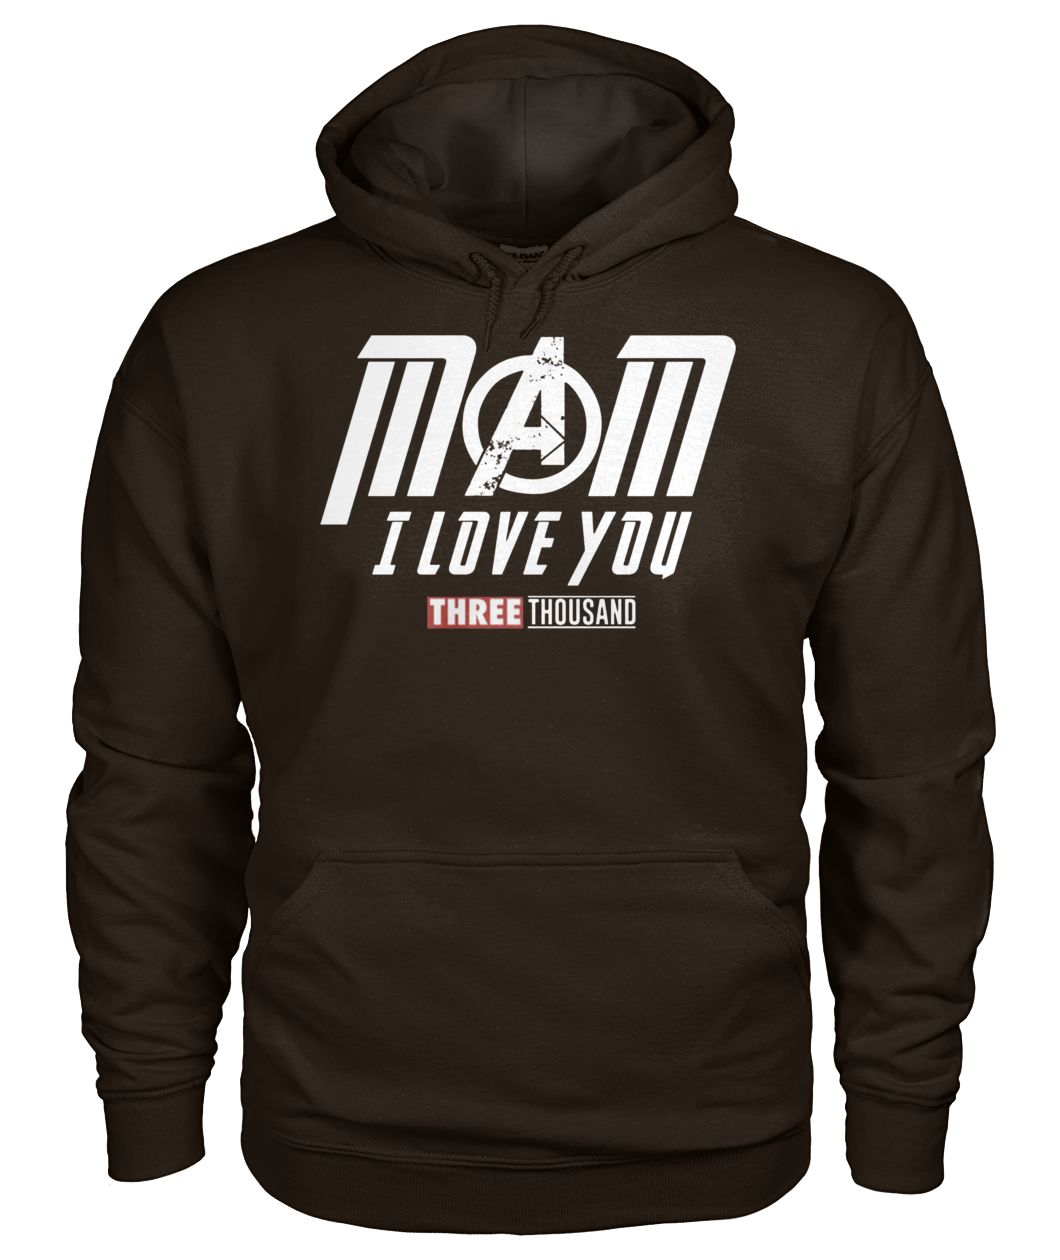 Endgame mom I love you three thousand gildan hoodie